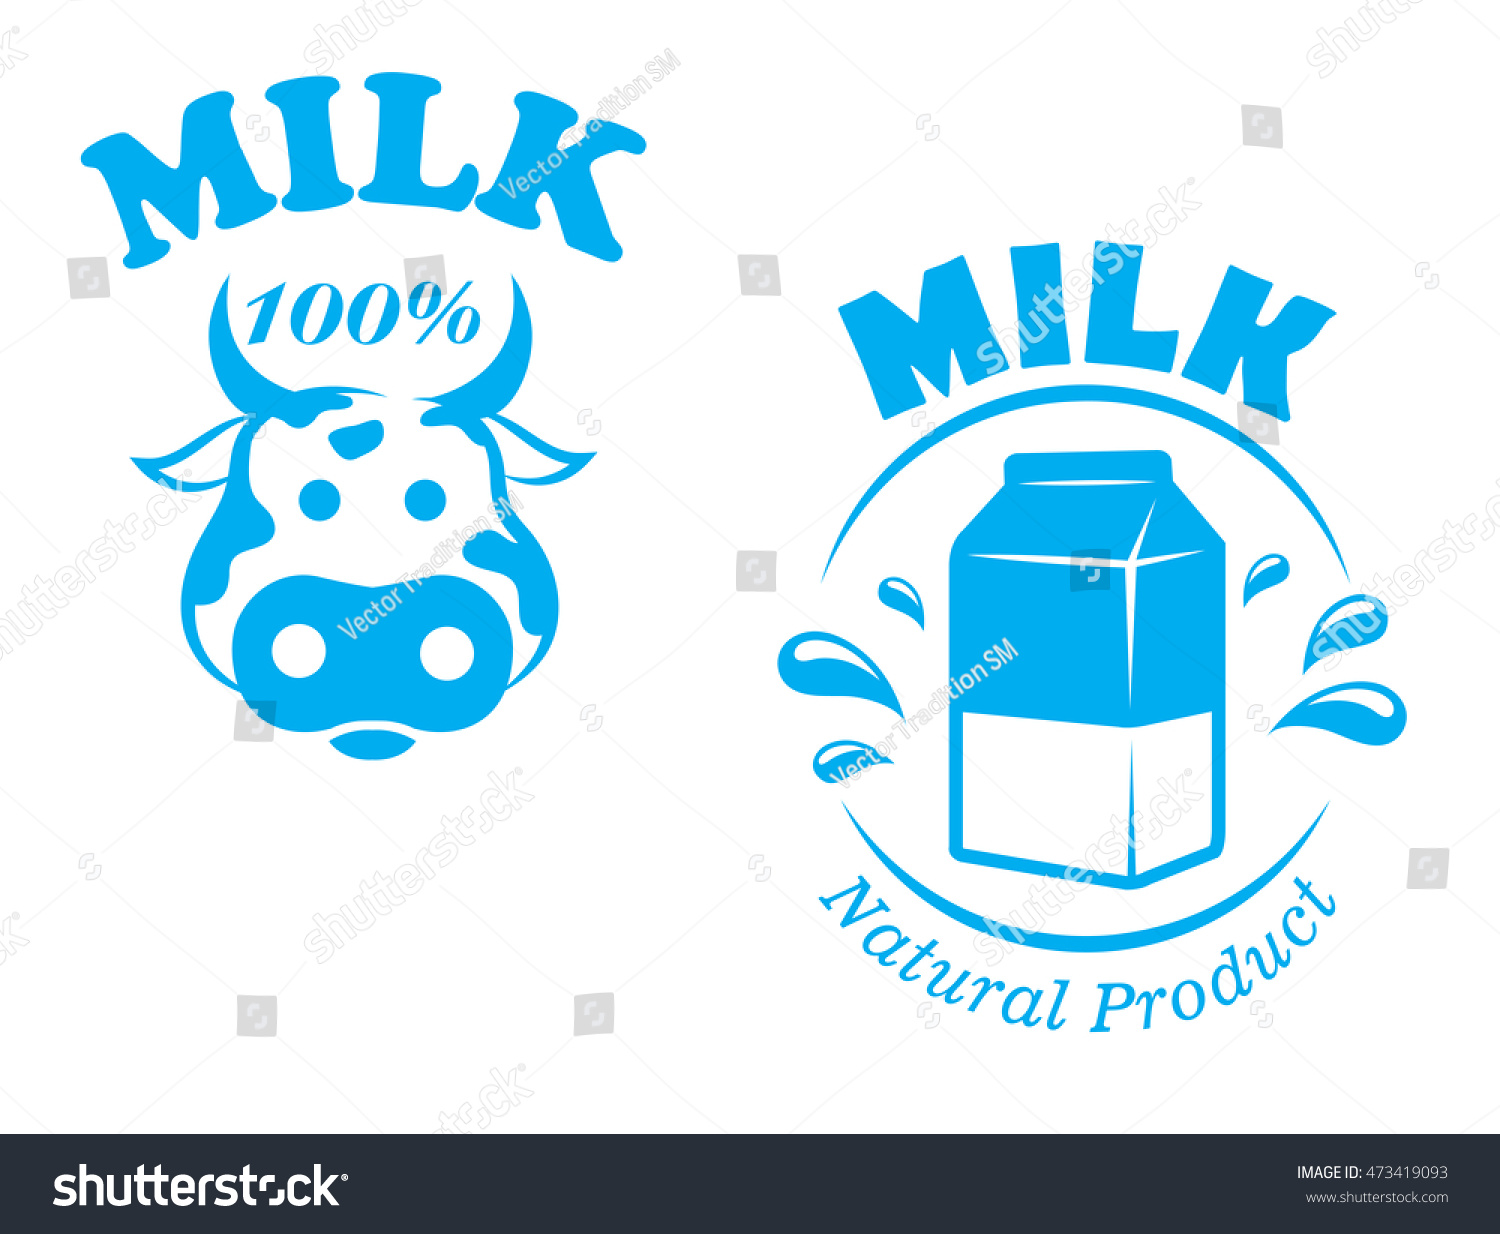 Milk emblem symbol cow head package stock illustration 473419093 milk emblem or symbol with cow head and package of one hundred percent natural product for buycottarizona